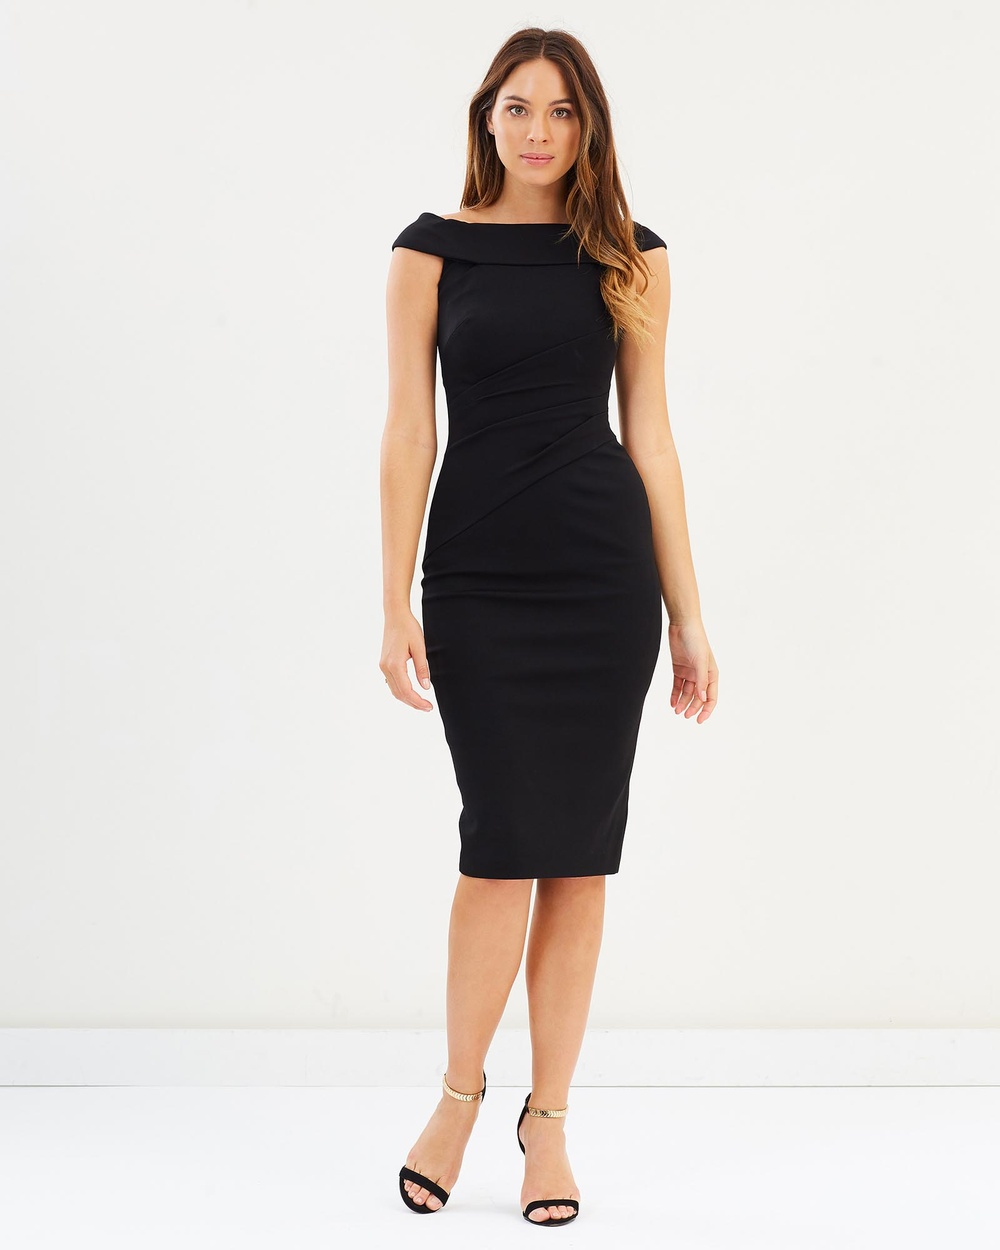 Karen Millen Bardot Shoulder Pencil Dress Dresses Black Bardot Shoulder Pencil Dress